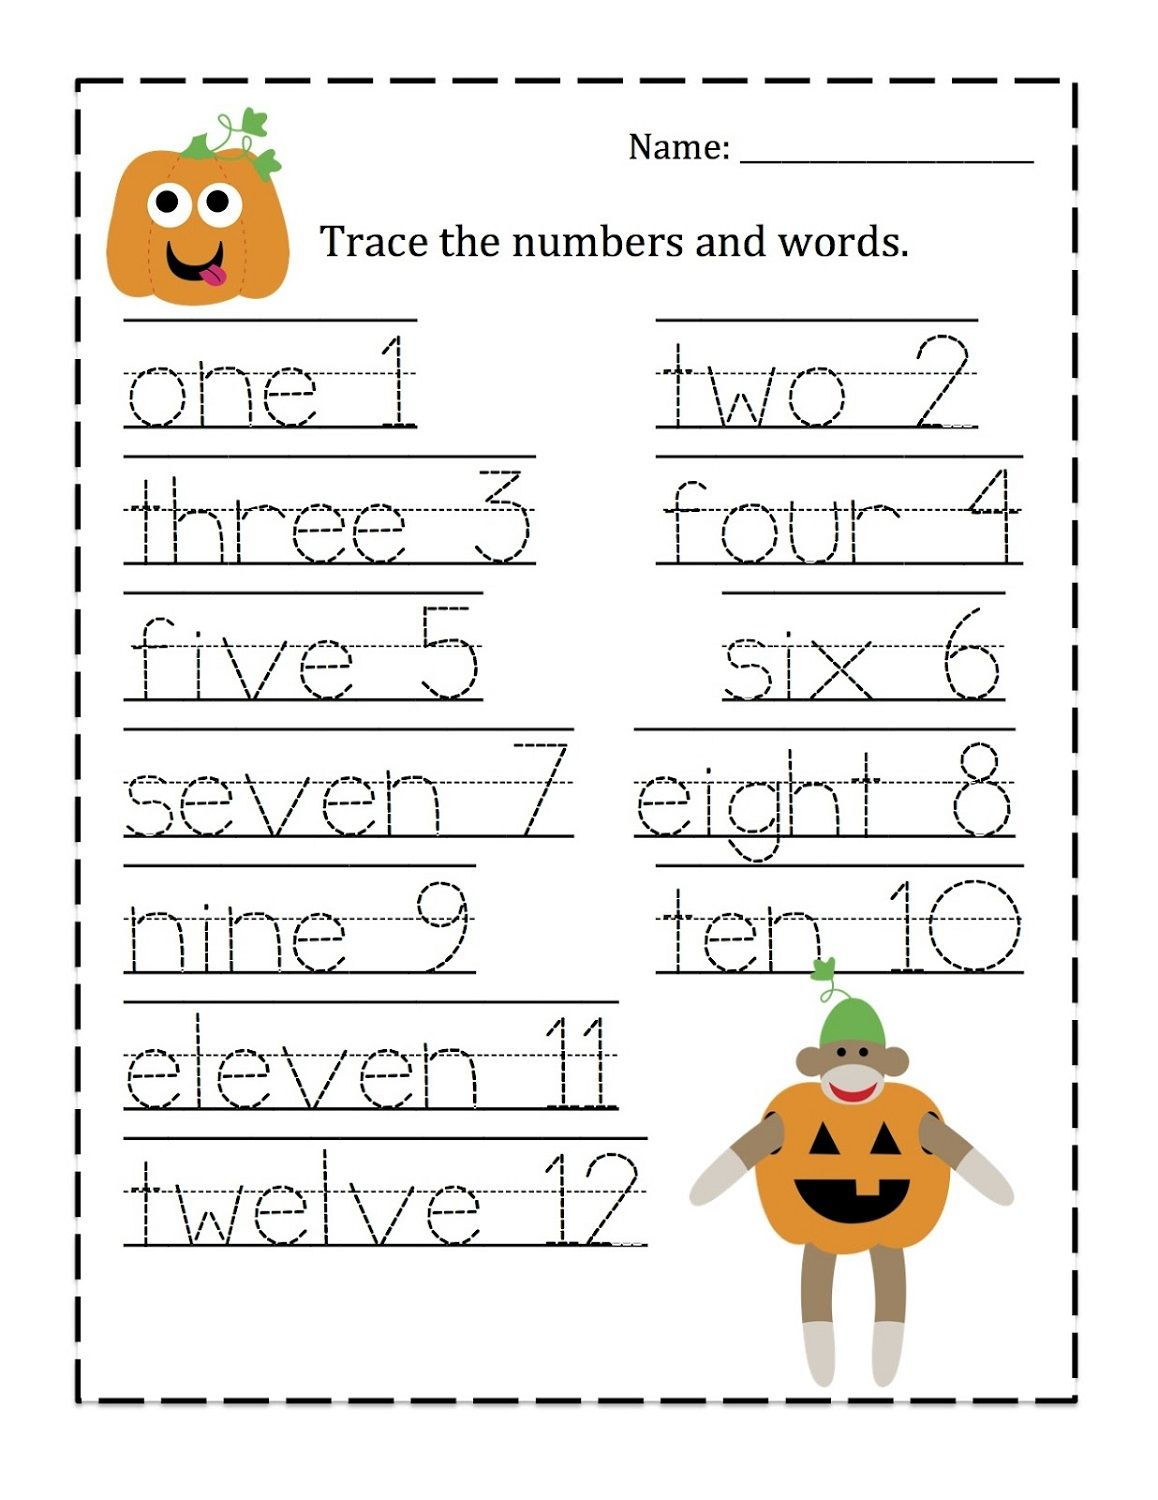 Trace The Numbers Worksheets Preschool Tracing Free Preschool Worksheets Color Worksheets For Preschool